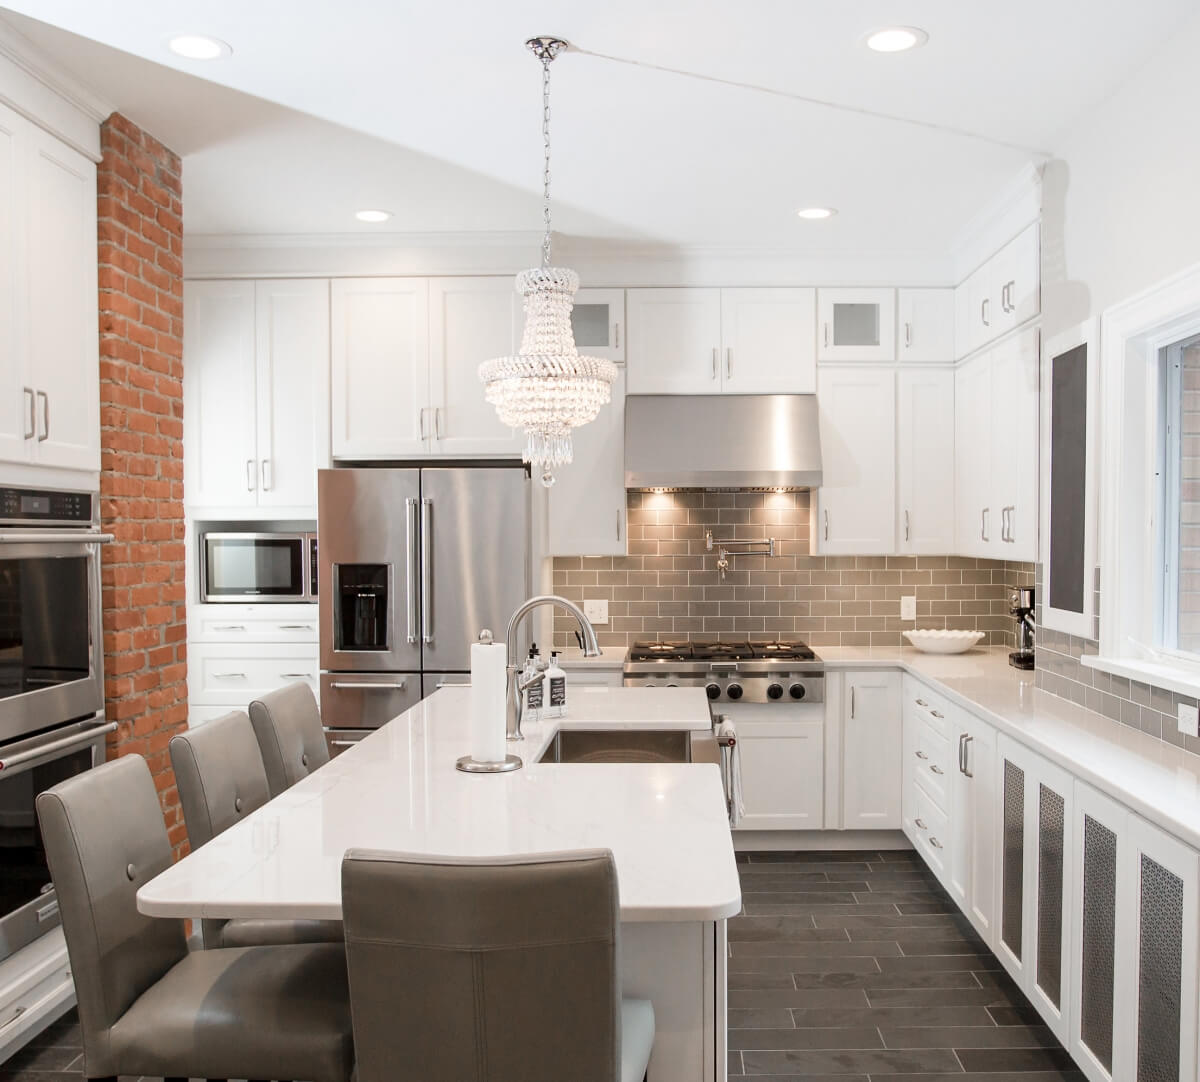 A white on white kitchen with Dura Supreme cabinetry and a large chandalier over the kitchen island.